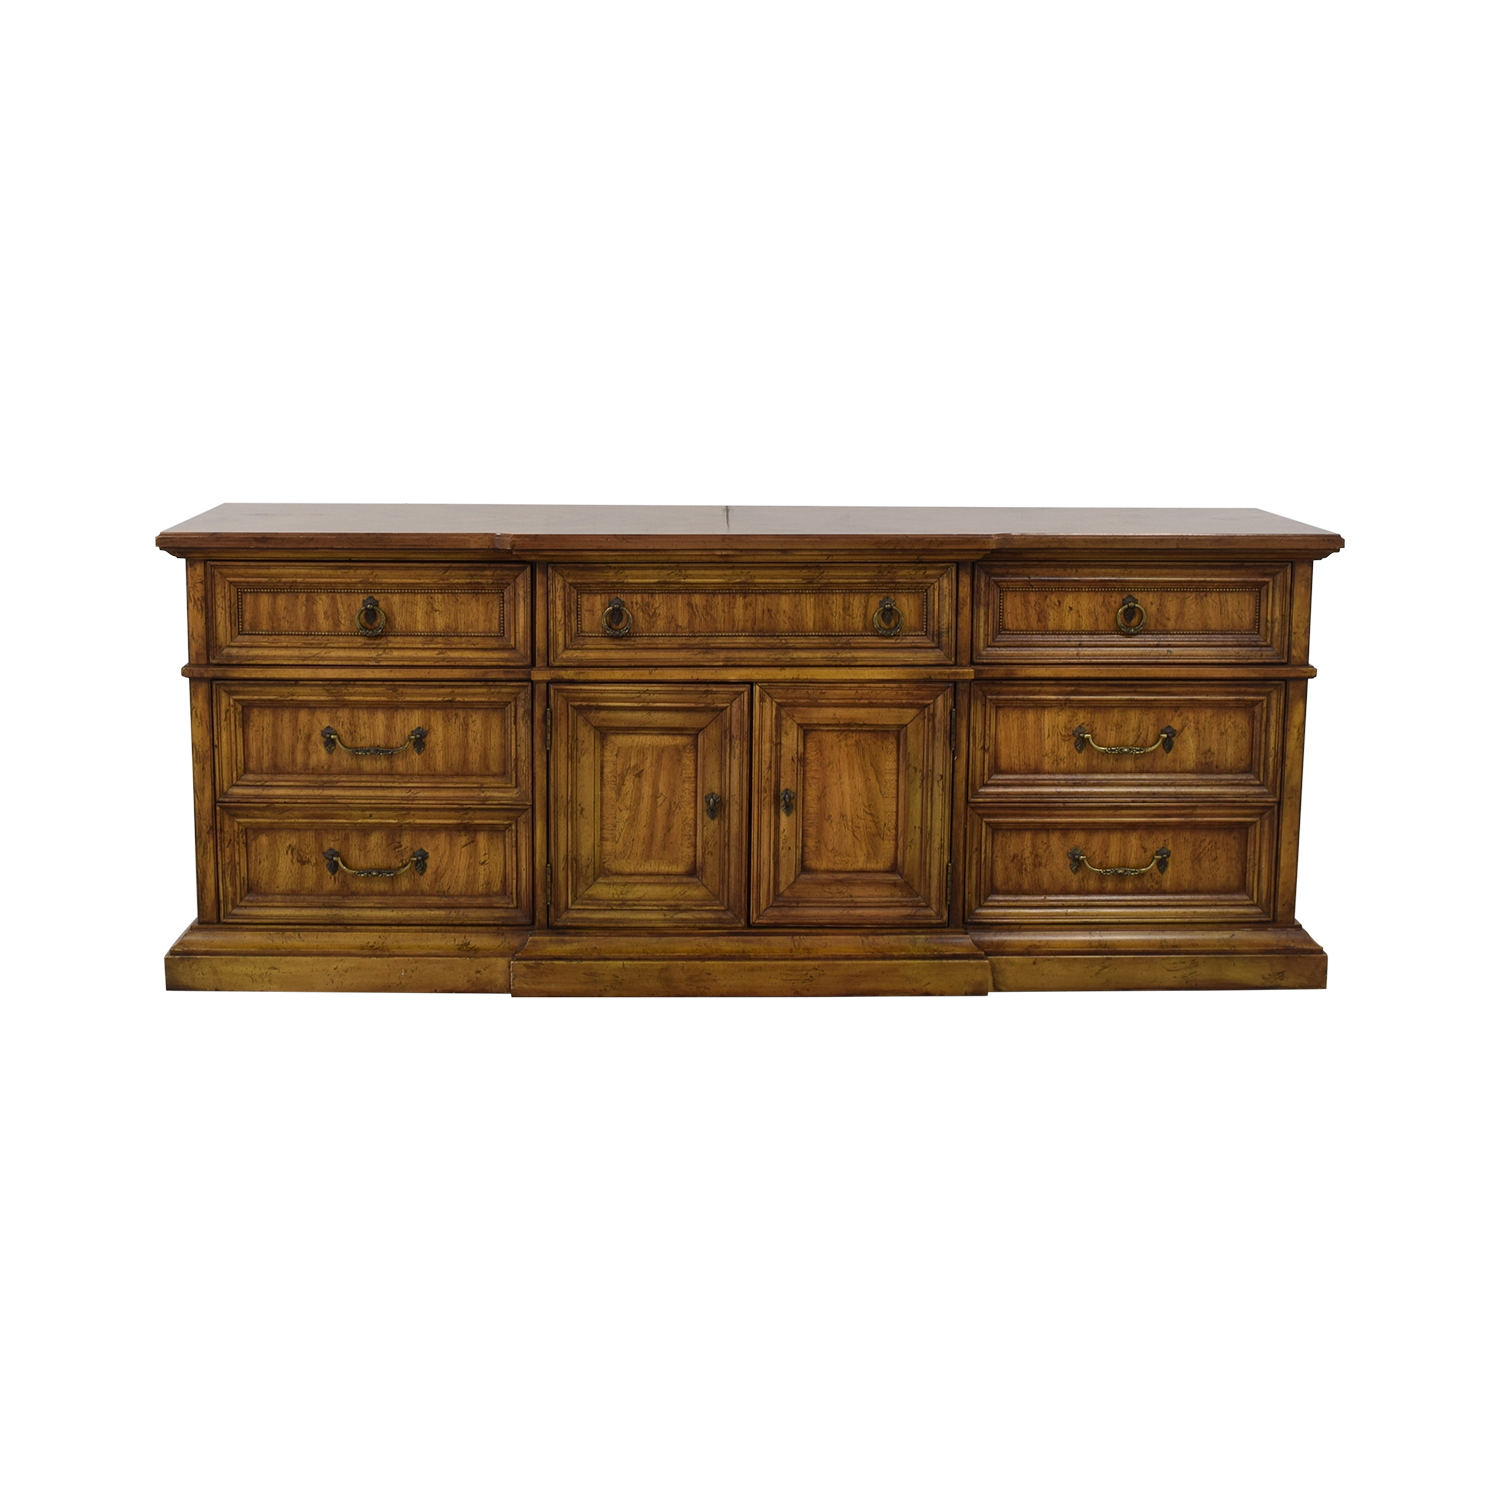 Stanley Furniture Stanley Furniture Cabinet and Dresser discount